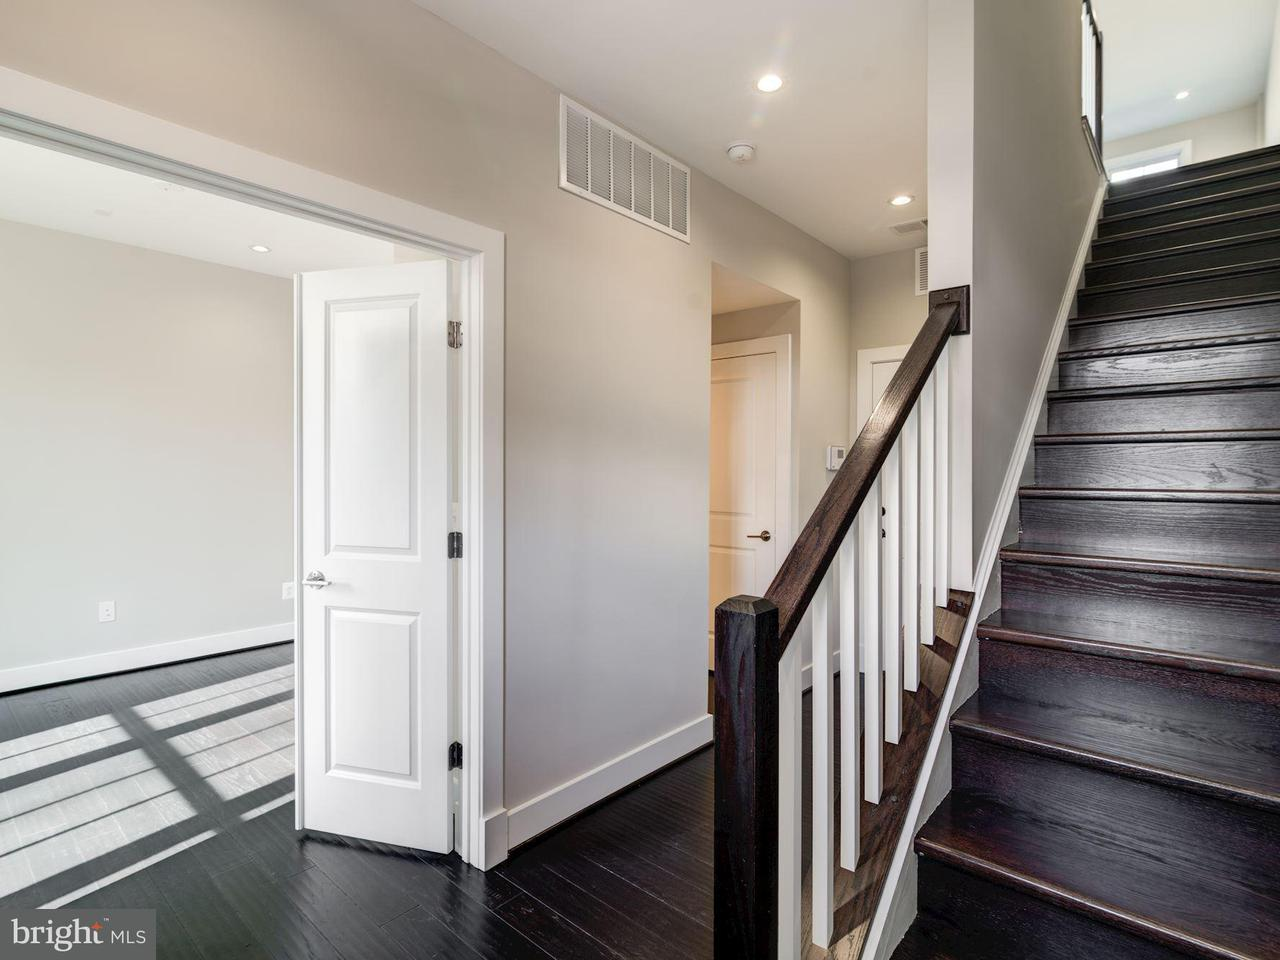 Townhouse for Sale at 1323 Wilkes. St S 1323 Wilkes. St S Alexandria, Virginia 22314 United States